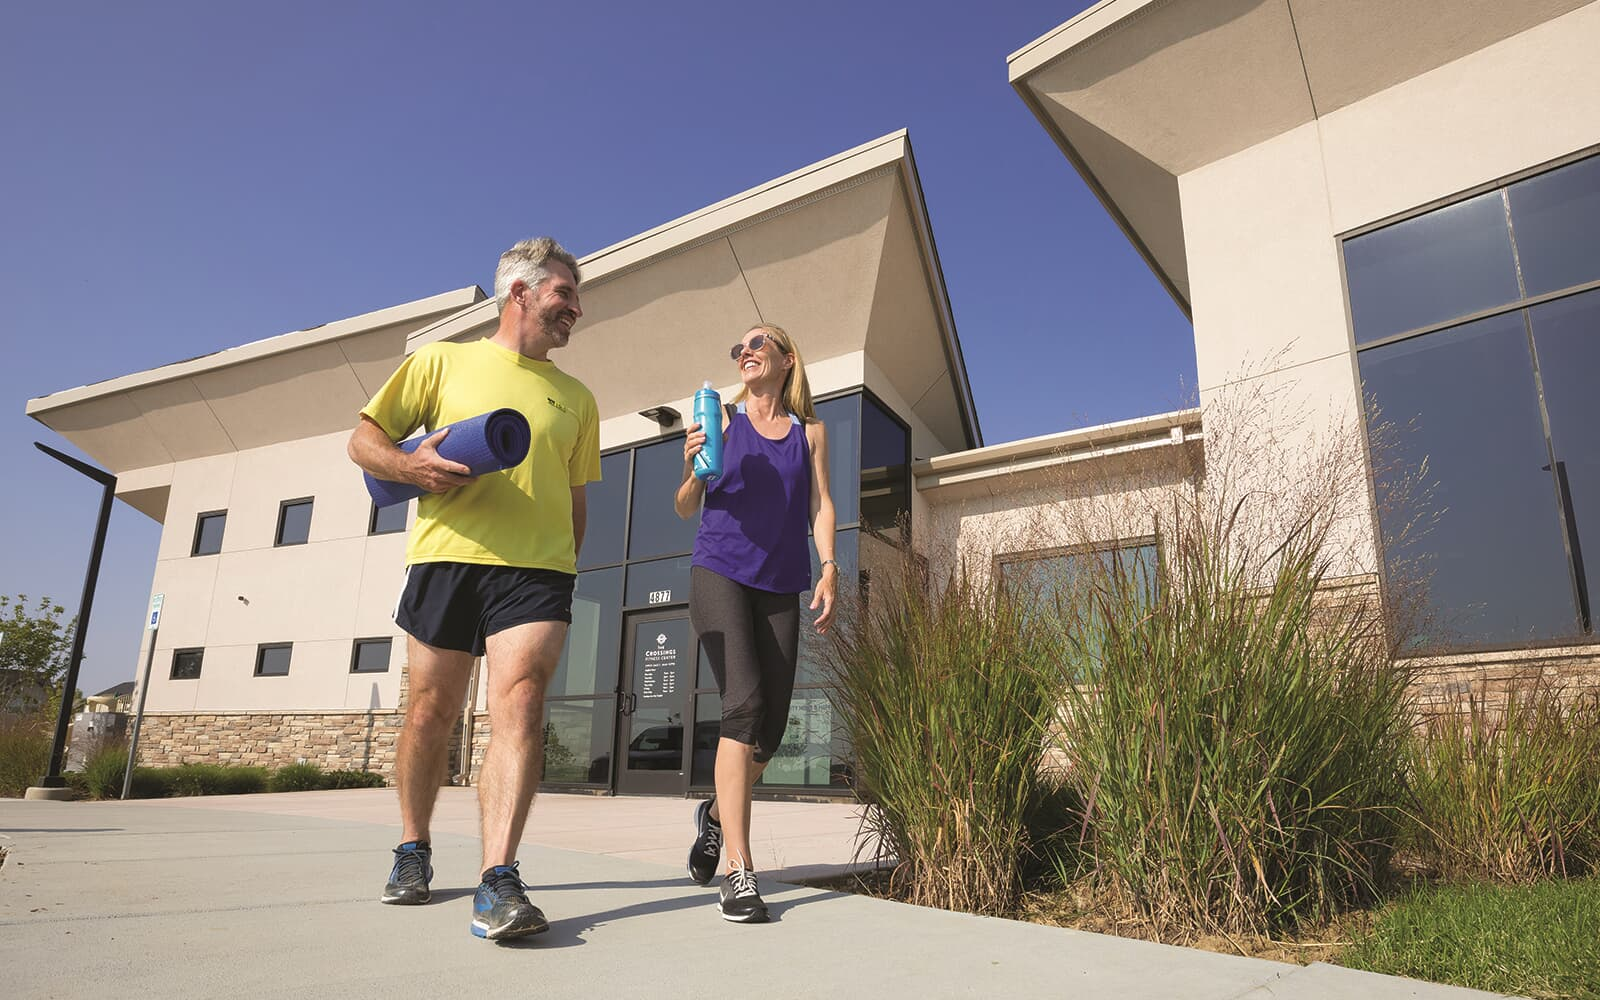 Lifestyle-Crossings-Fitness-Couple-Brighton-Crossings-Denver-Colorado